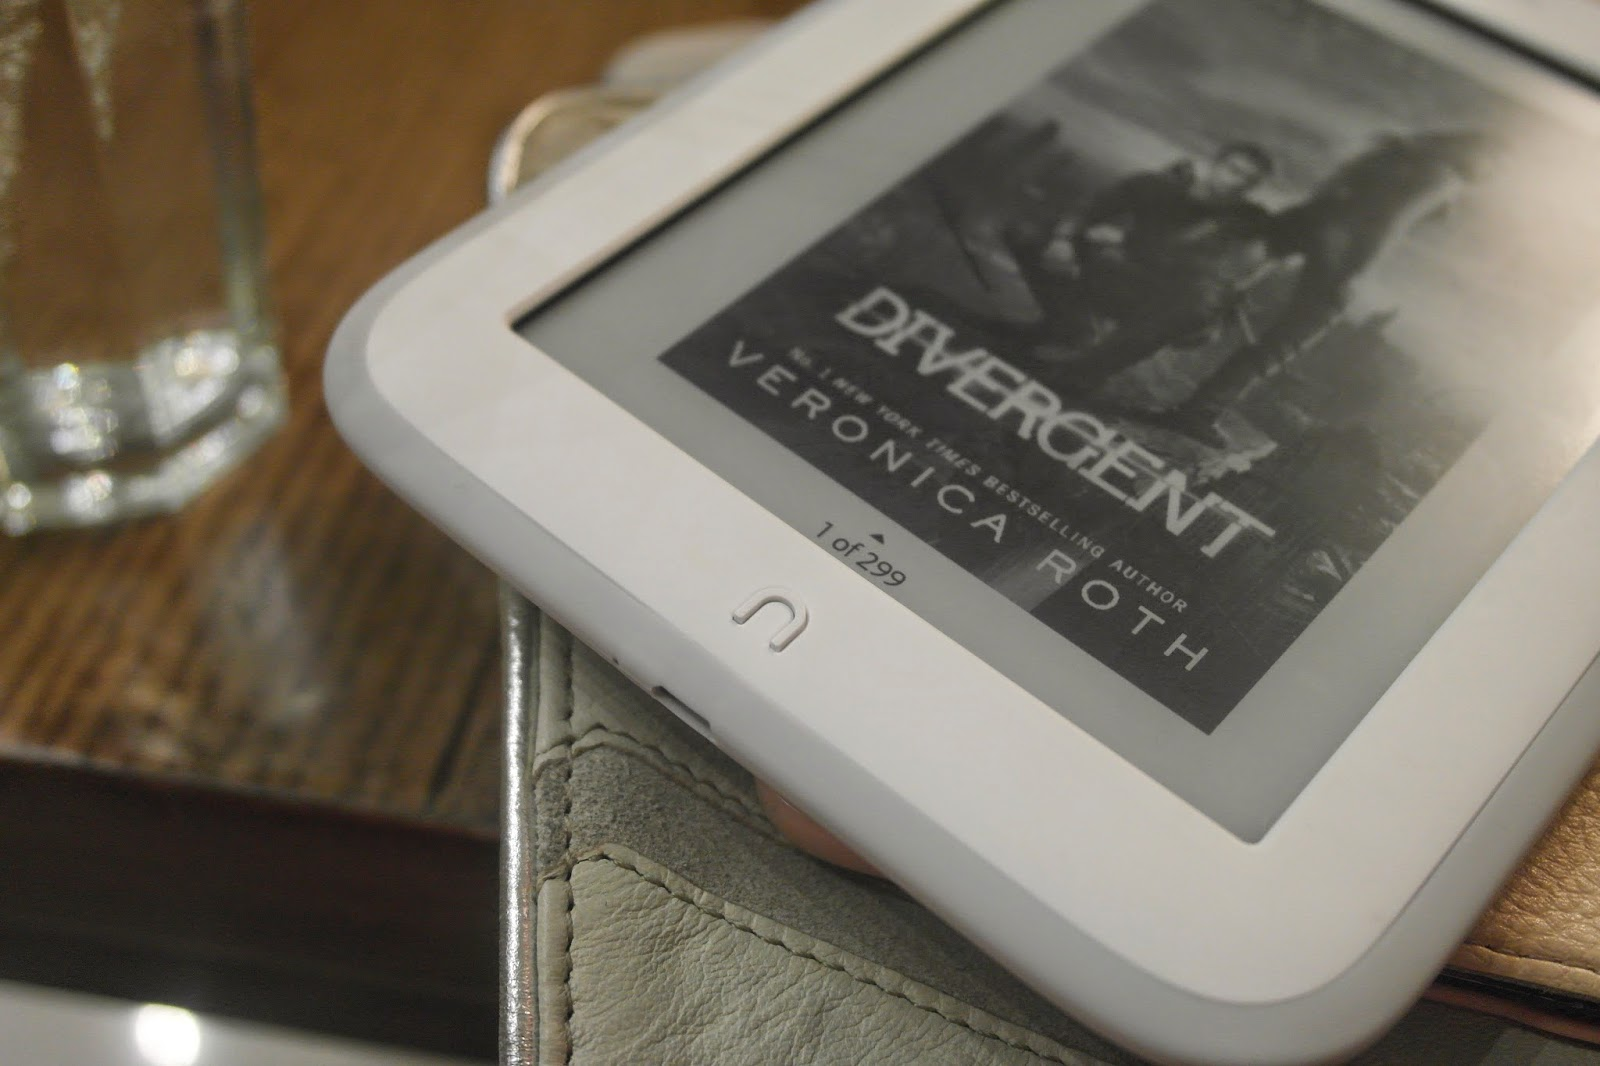 buy the nook glowlight